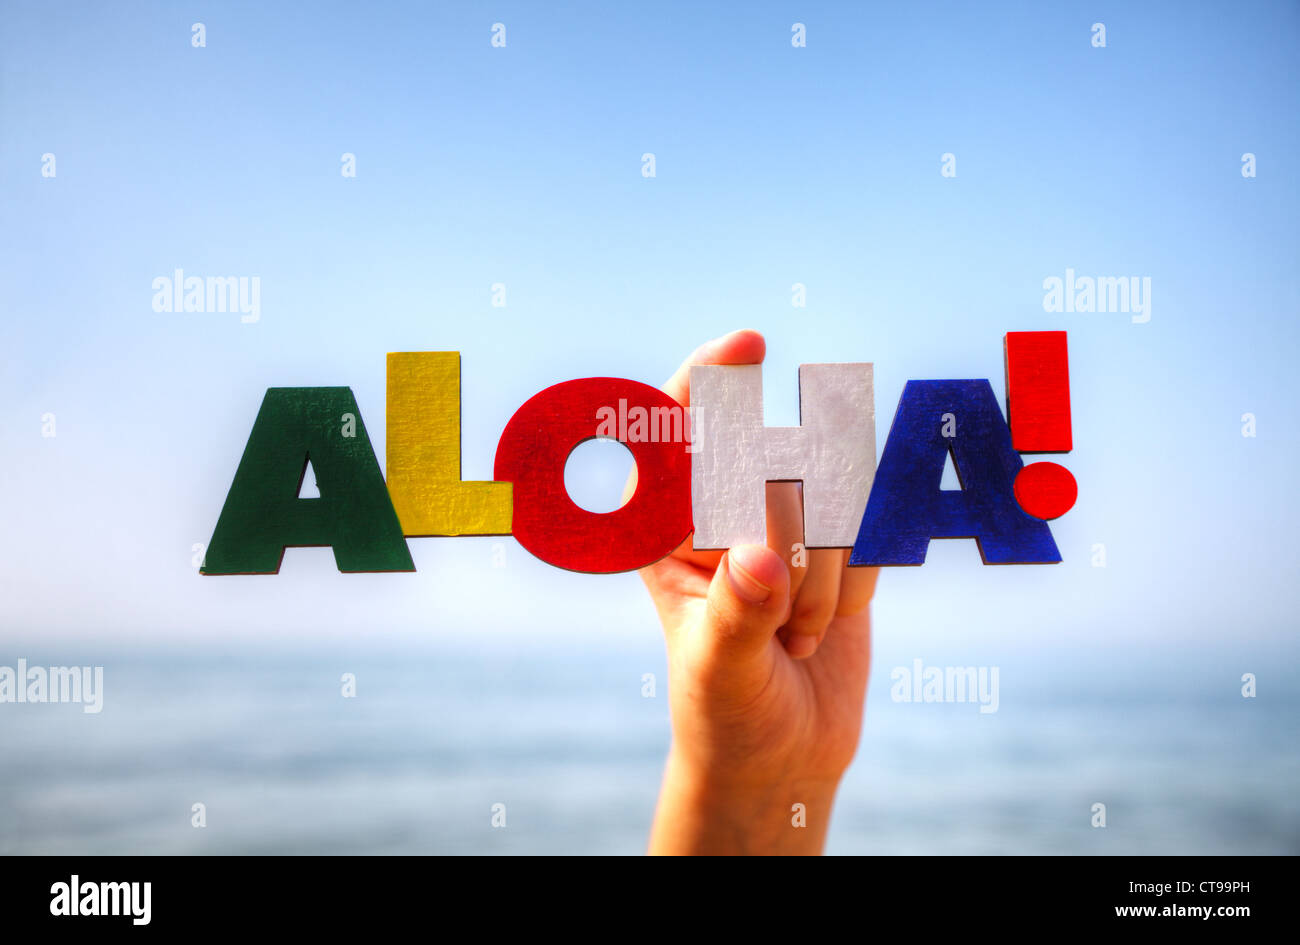 Female's hand holding colorful word 'Aloha' against blue background - Stock Image